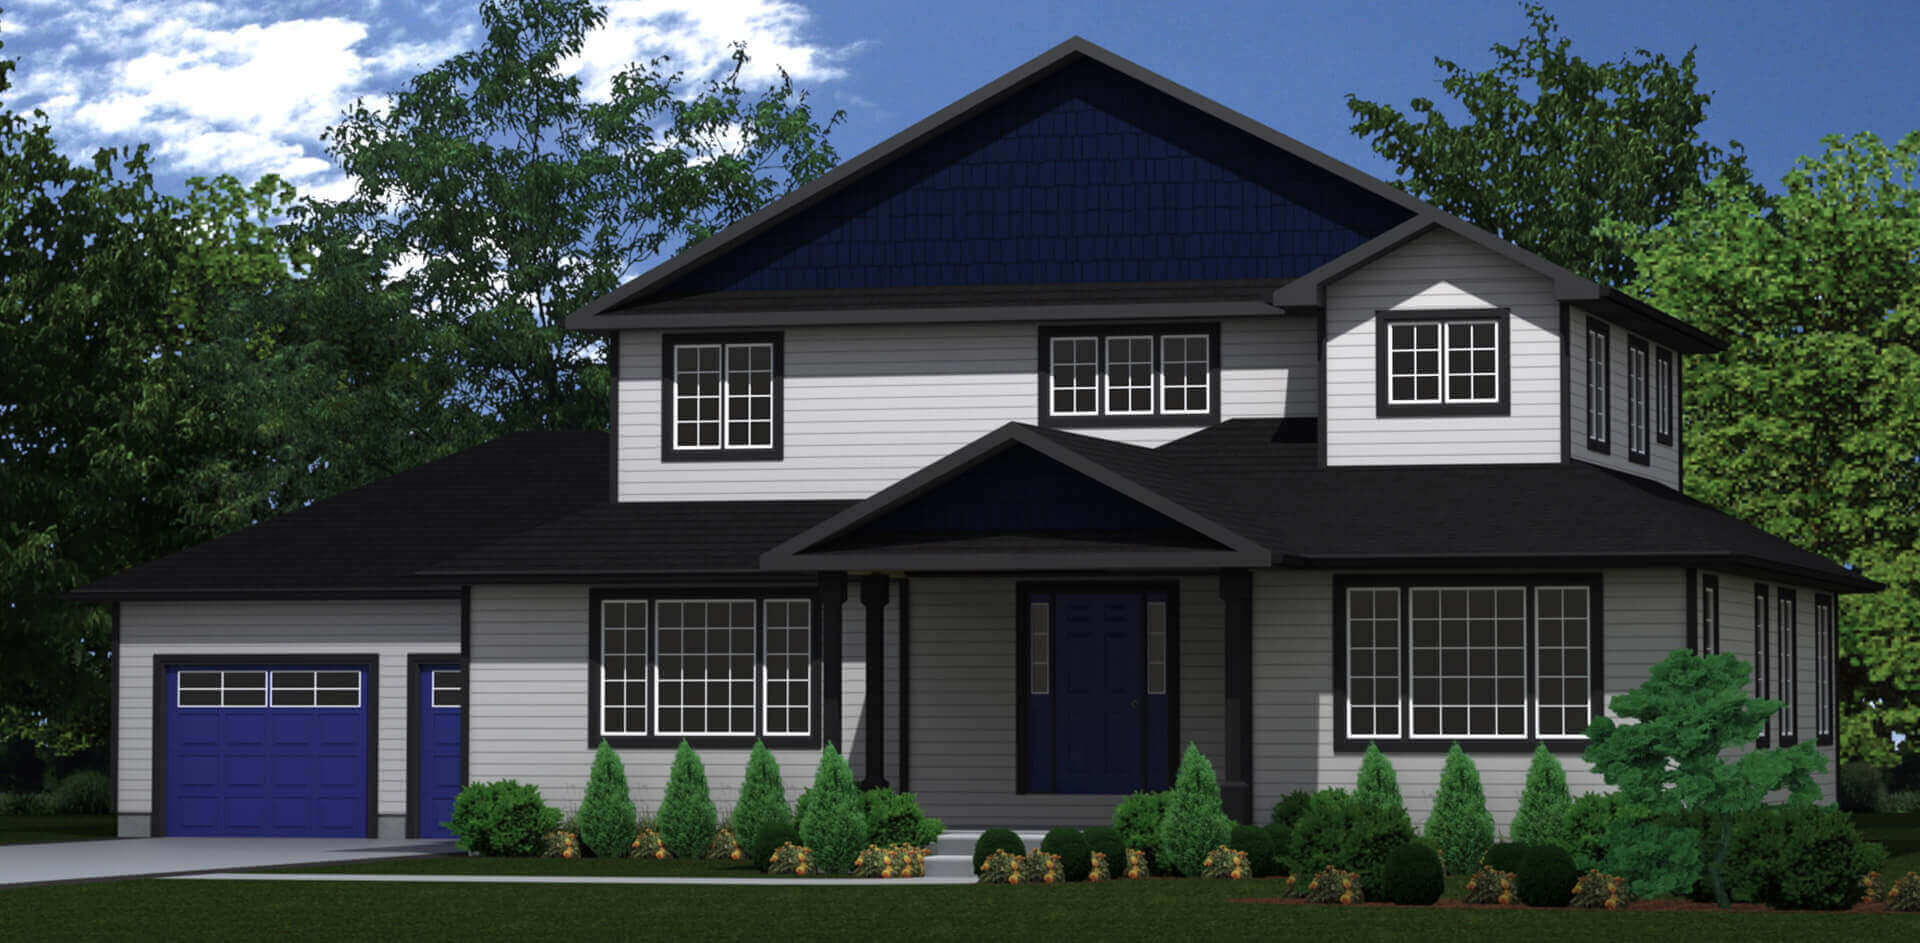 3064 sq.ft. timber mart house 4 bed 4 bath exterior render